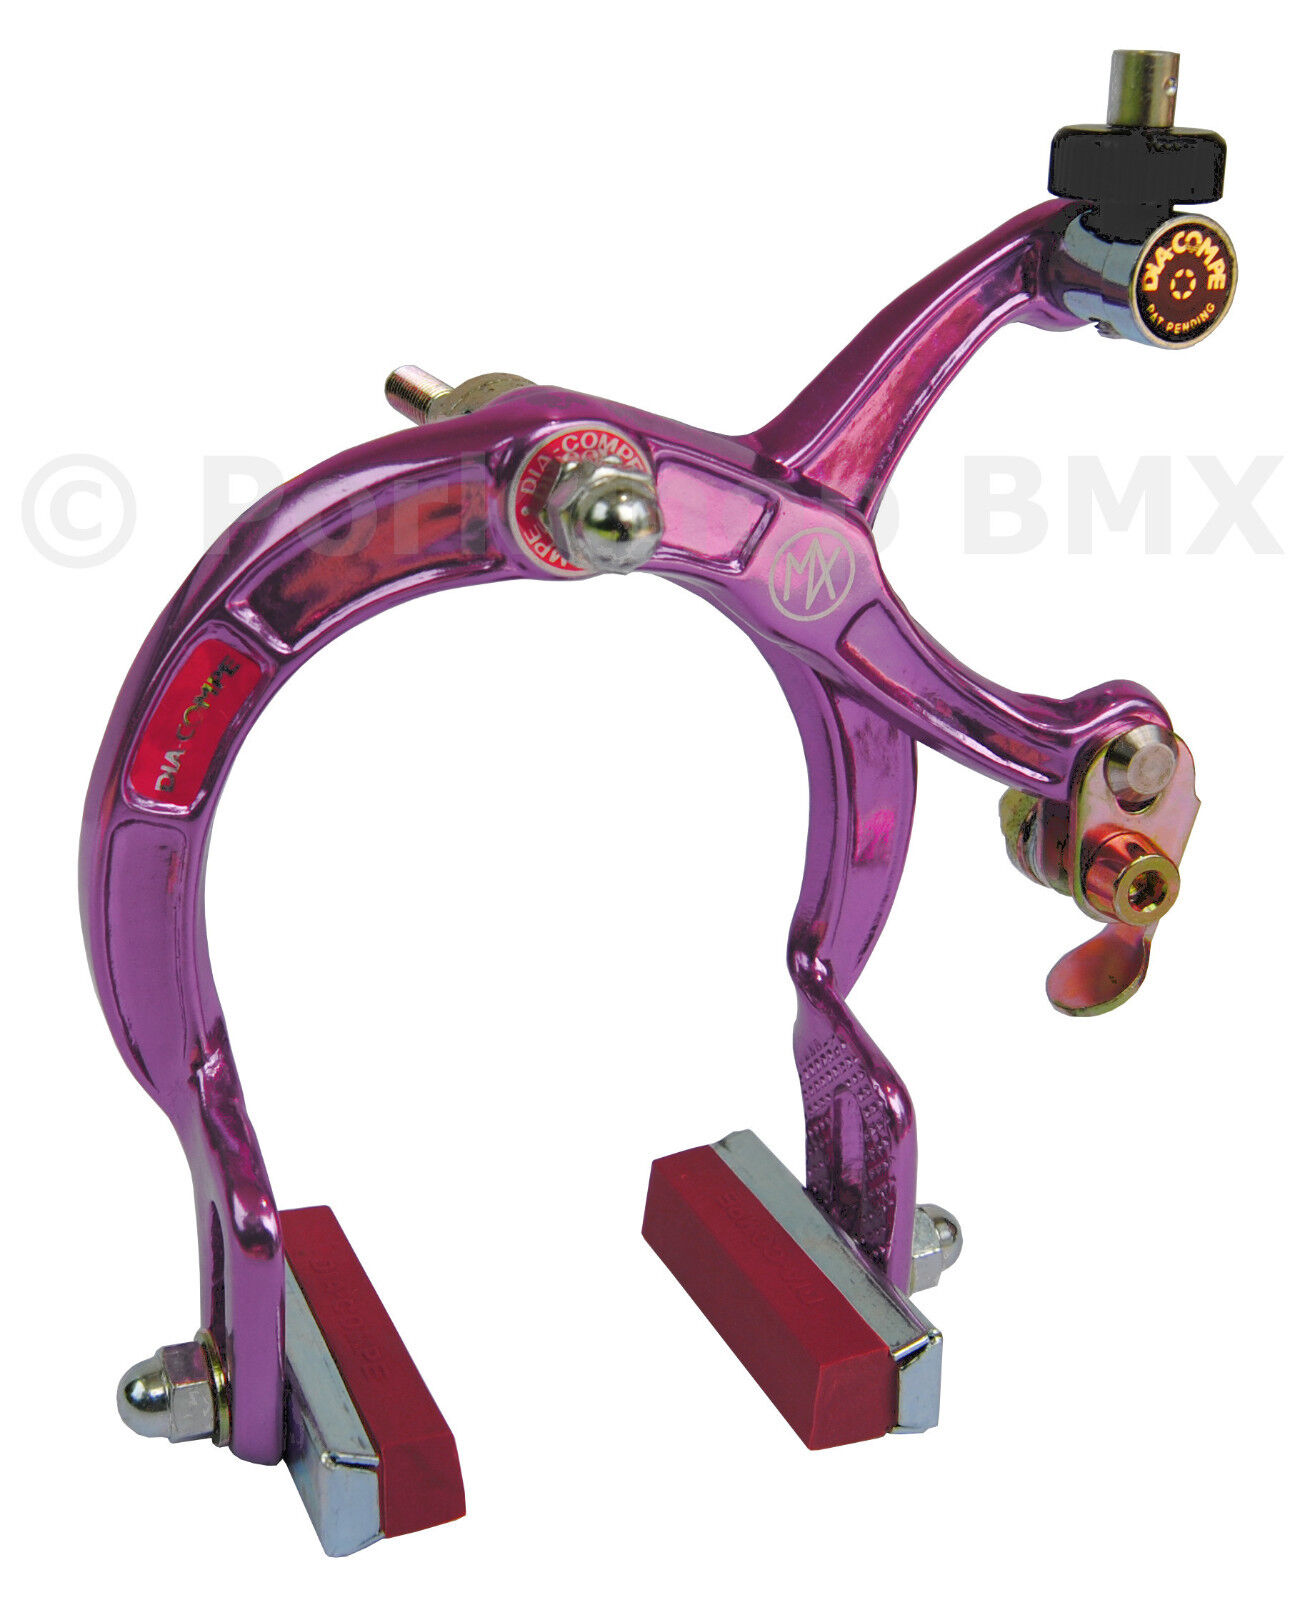 Dia-Compe old school BMX reissue MX1000 MX  1000 bicycle brake caliper PURPLE  order now lowest prices